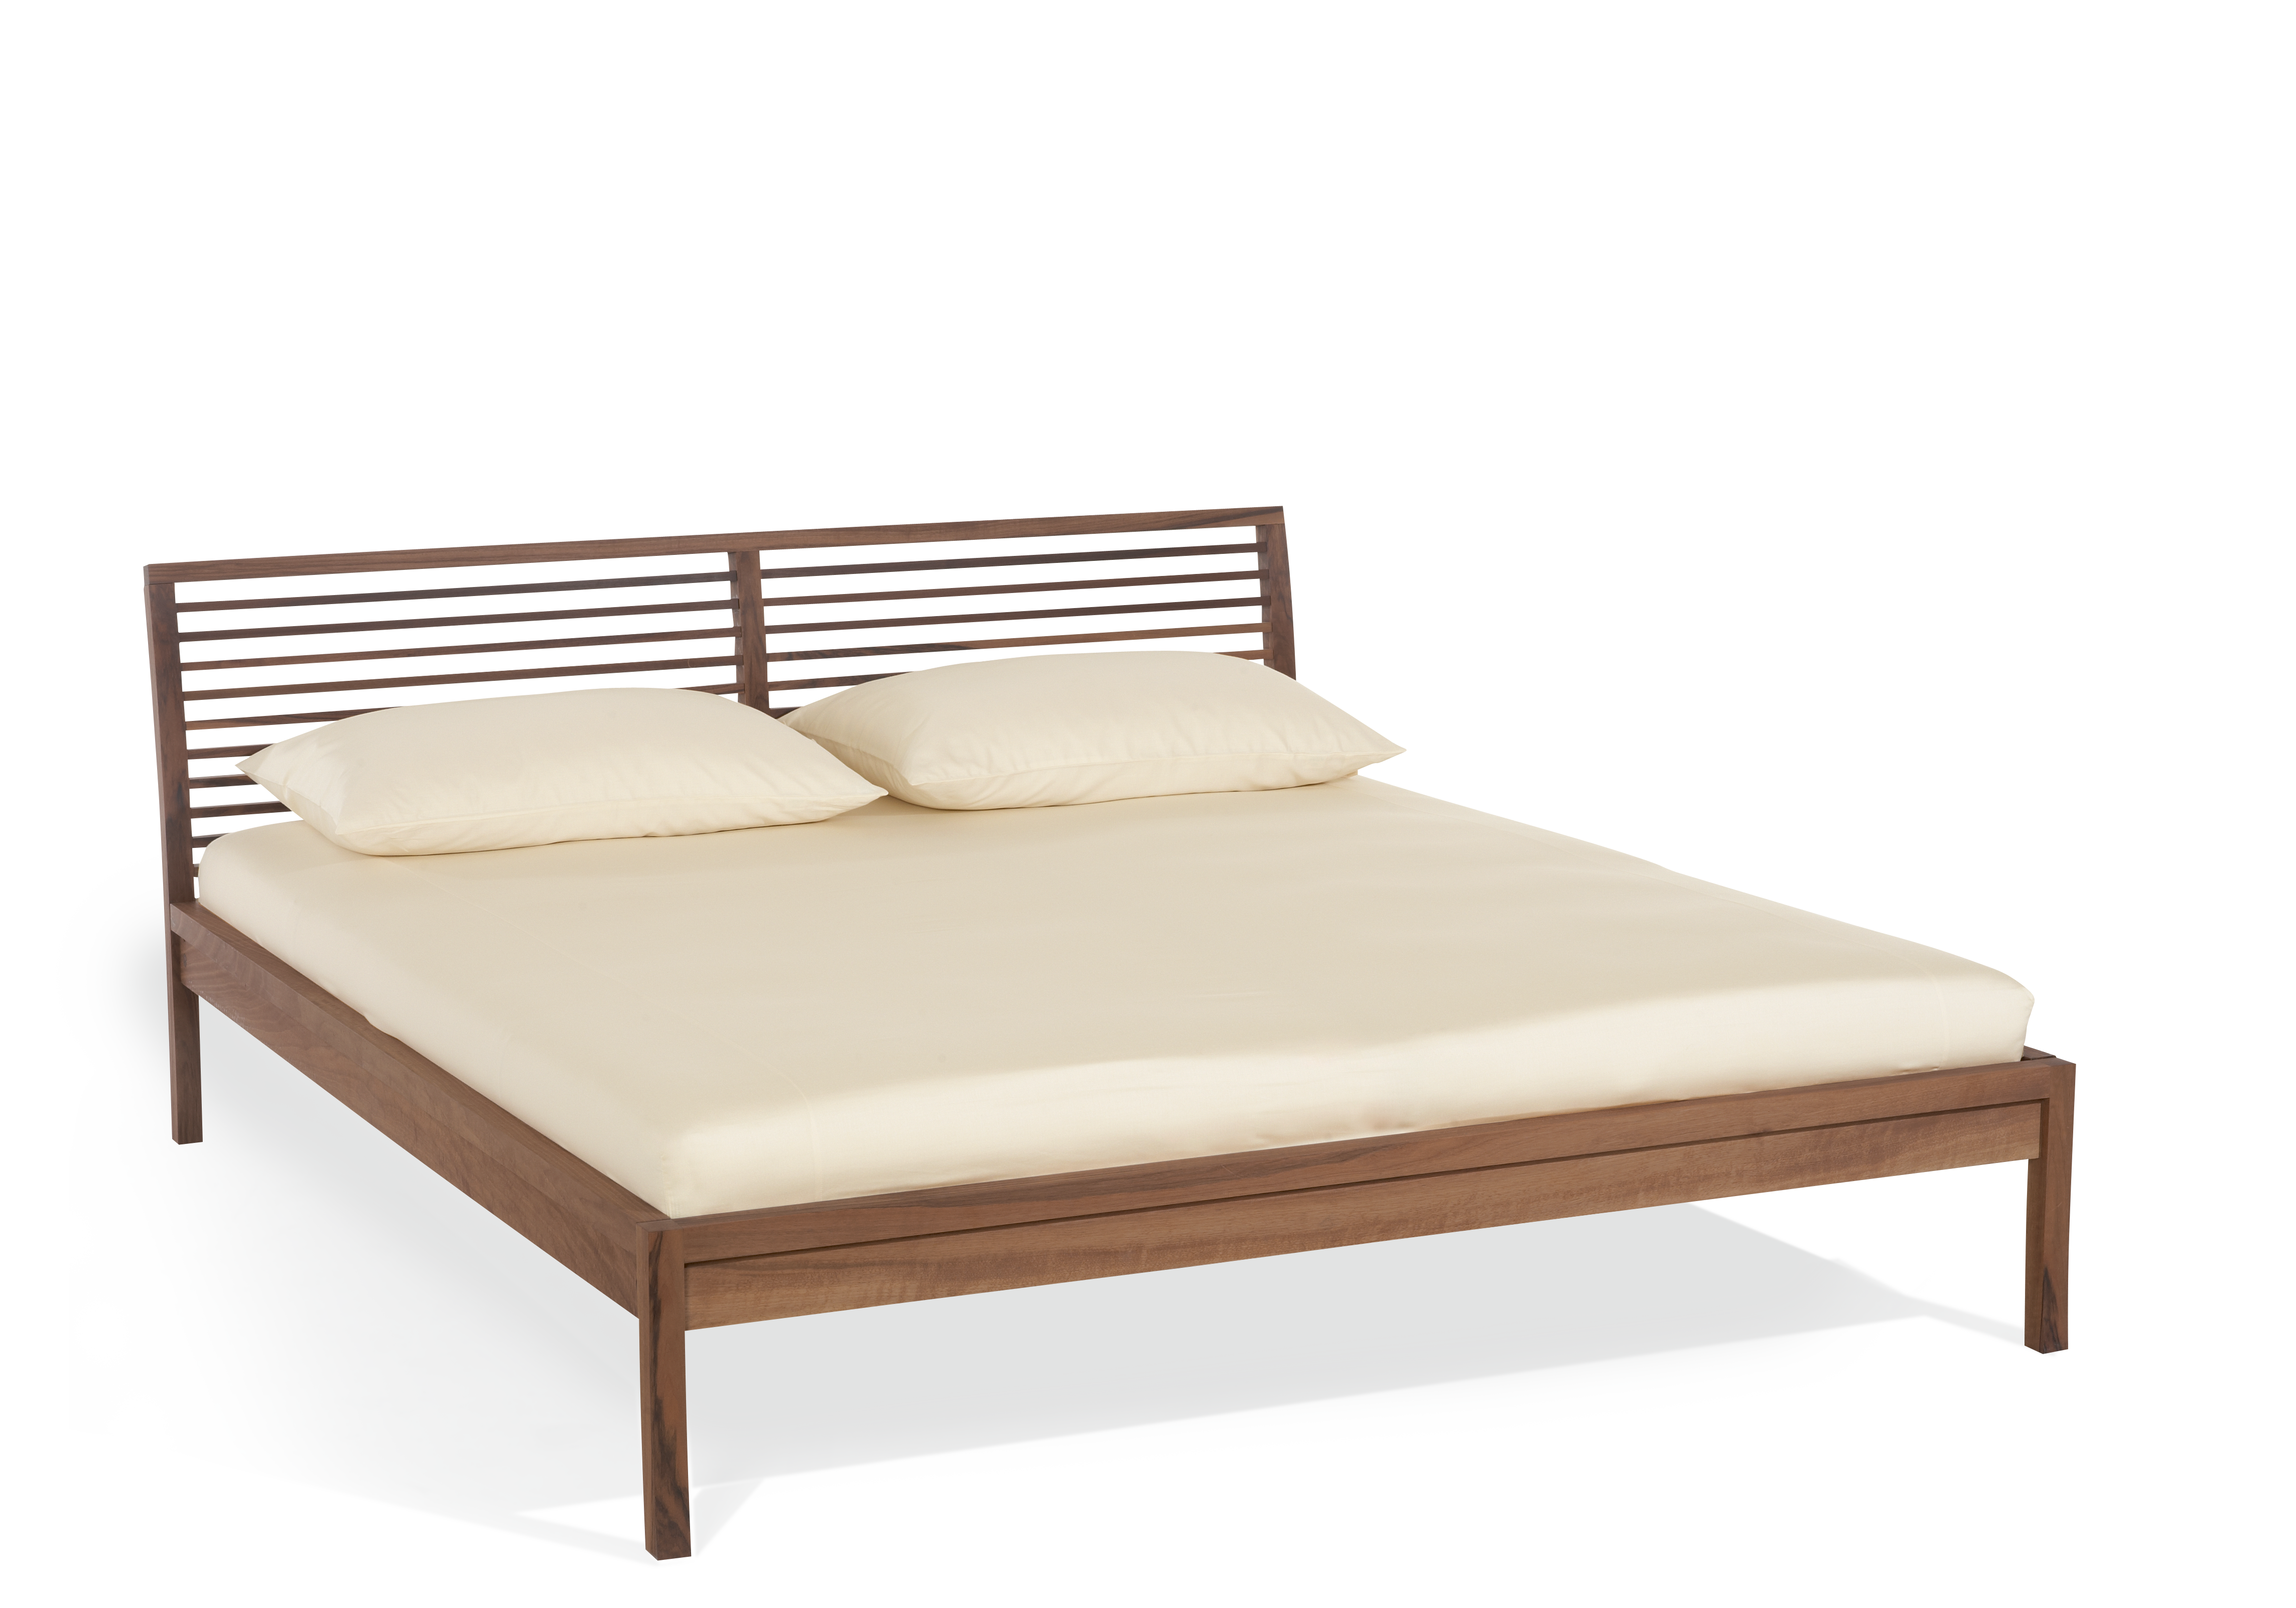 lattenrost 90x200 top bett biarritz schwarznuss inkl elastischem lattenrost x cm with. Black Bedroom Furniture Sets. Home Design Ideas